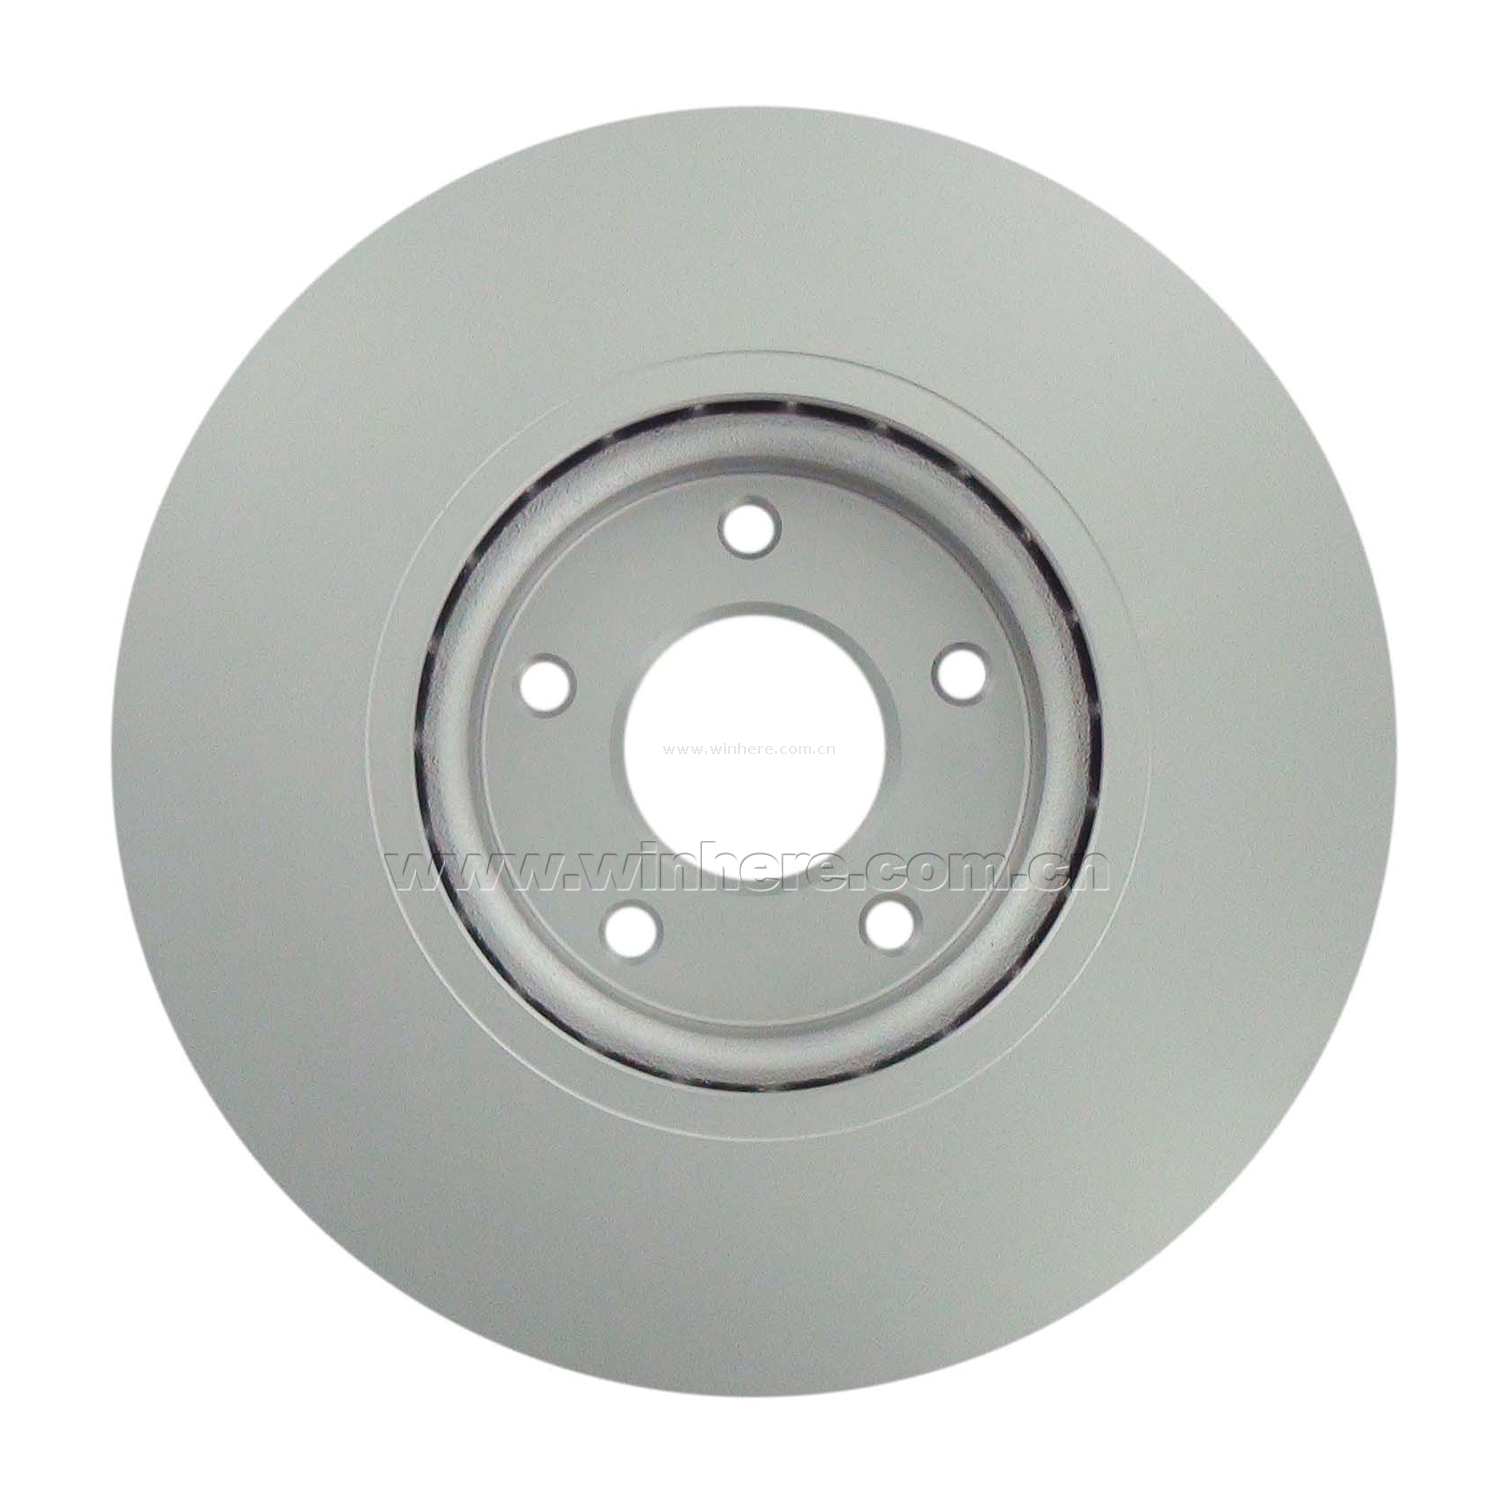 Long Life Friction Front Brake Disc ECE R90 Auto Spare Parts